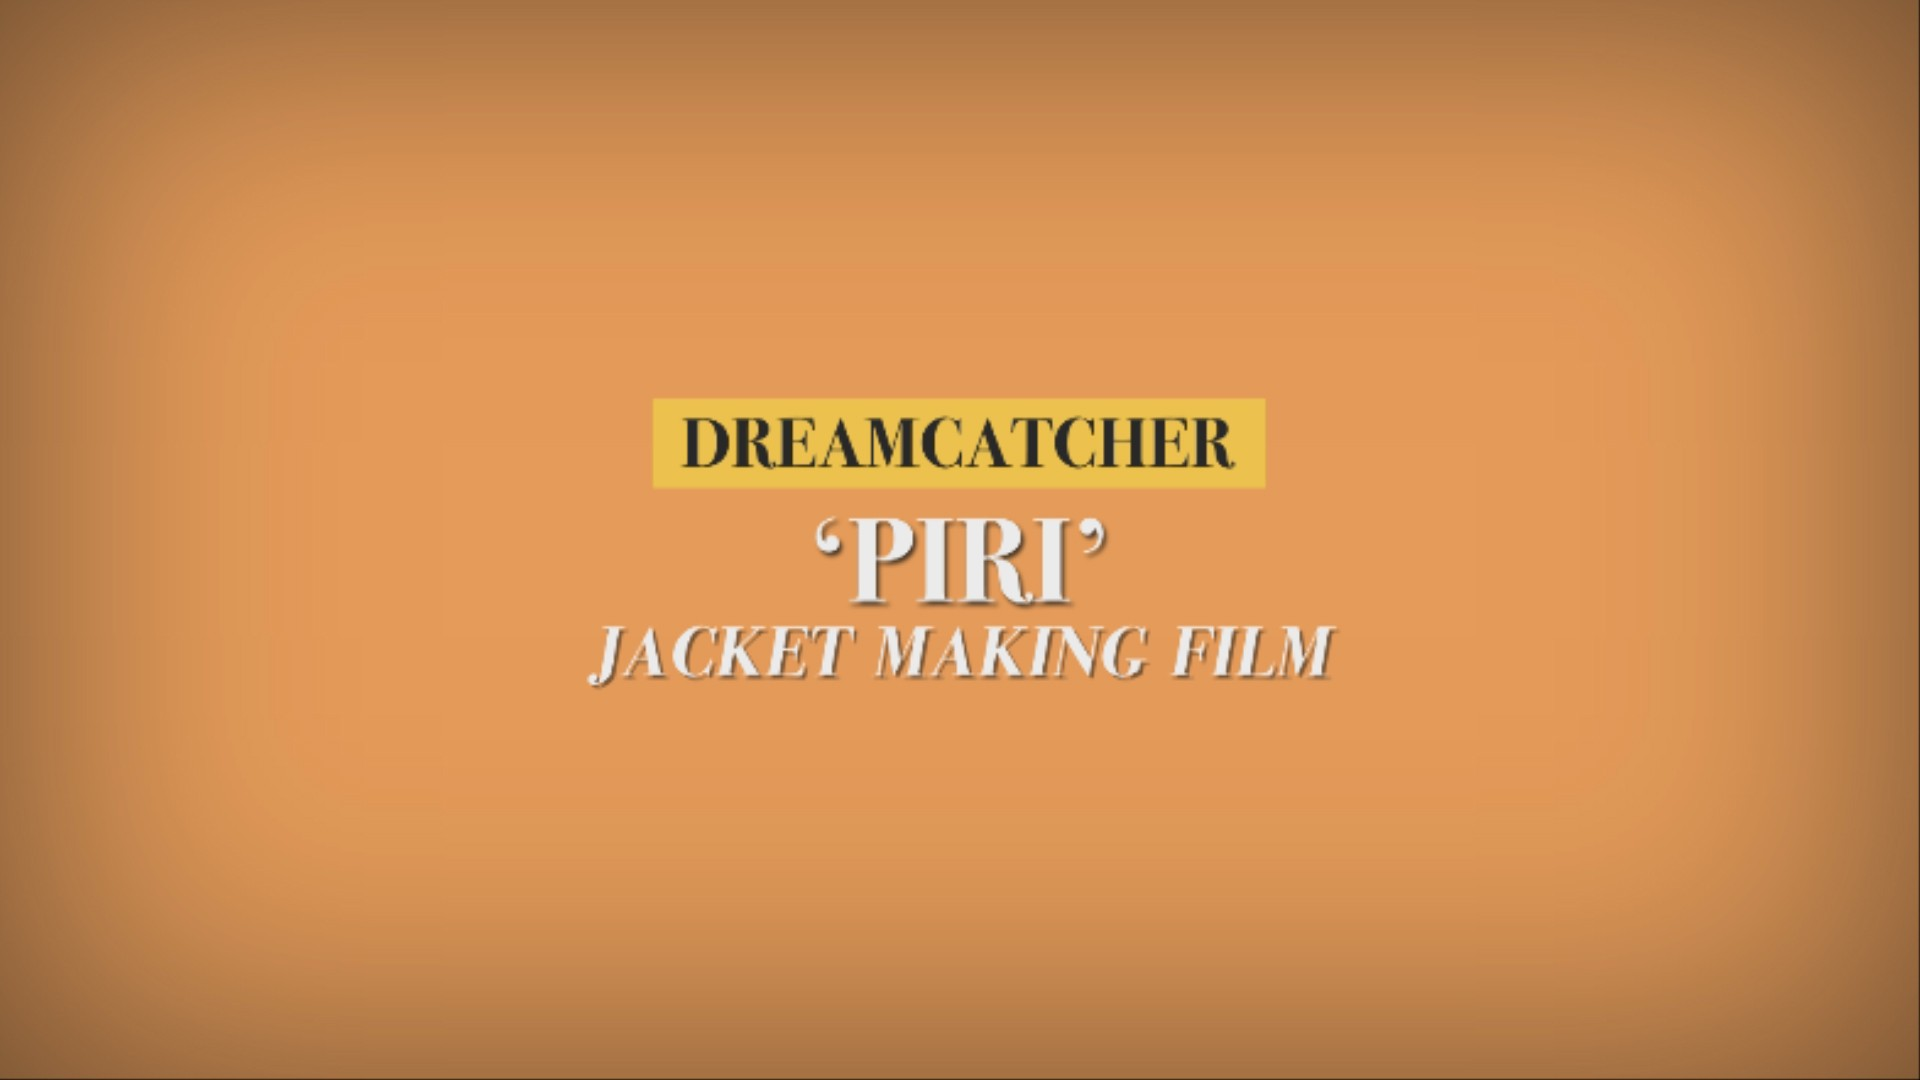 Dreamcatcher(드림캐쳐) [The End of Nightmare] Jacket Making Film